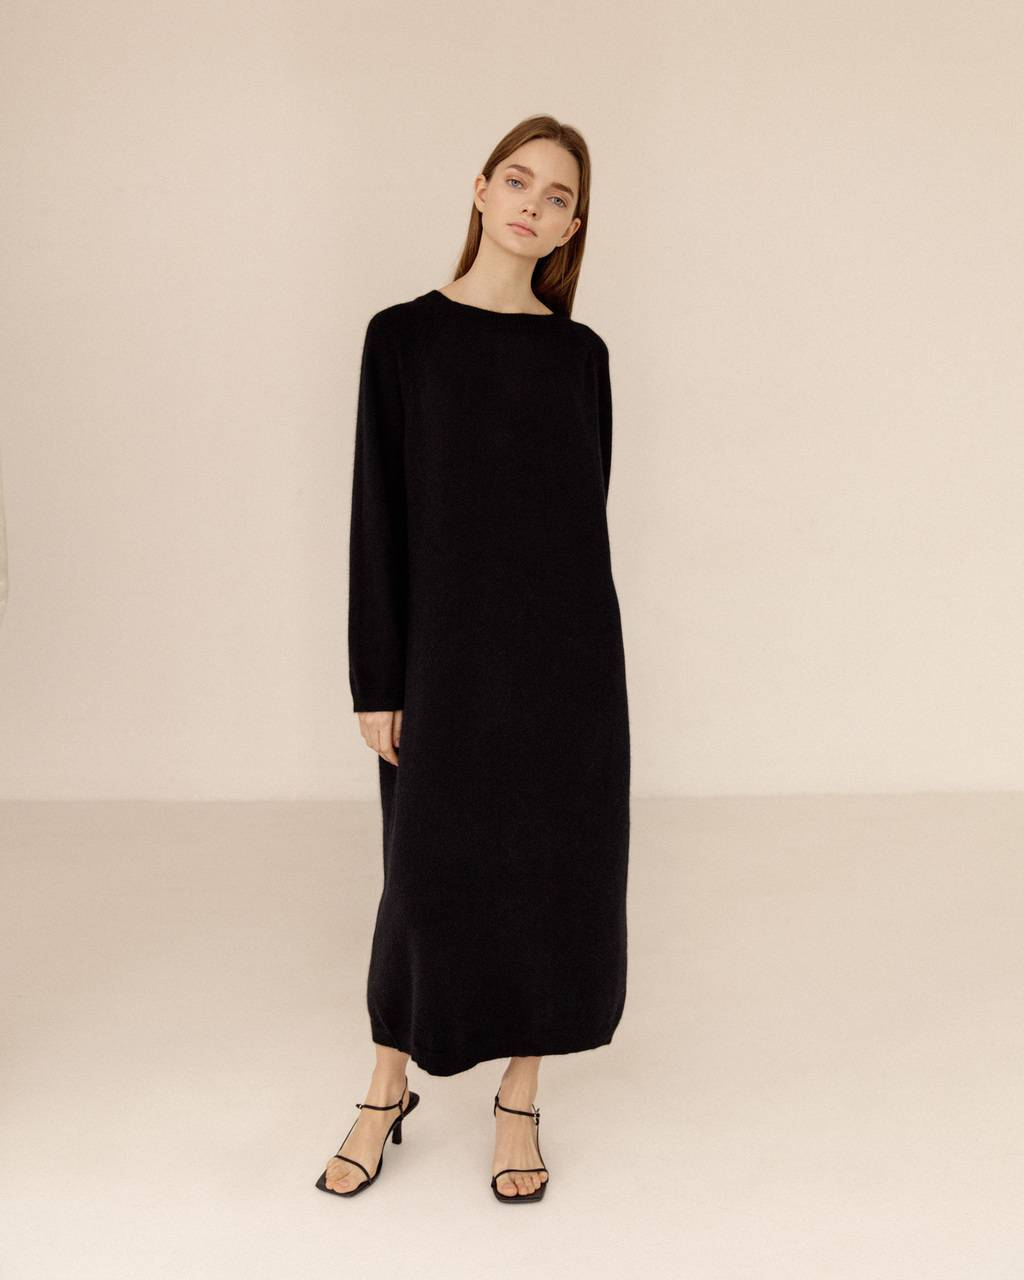 Oversize extra soft 100% cashmere dress- 470 USD / 390 EUR